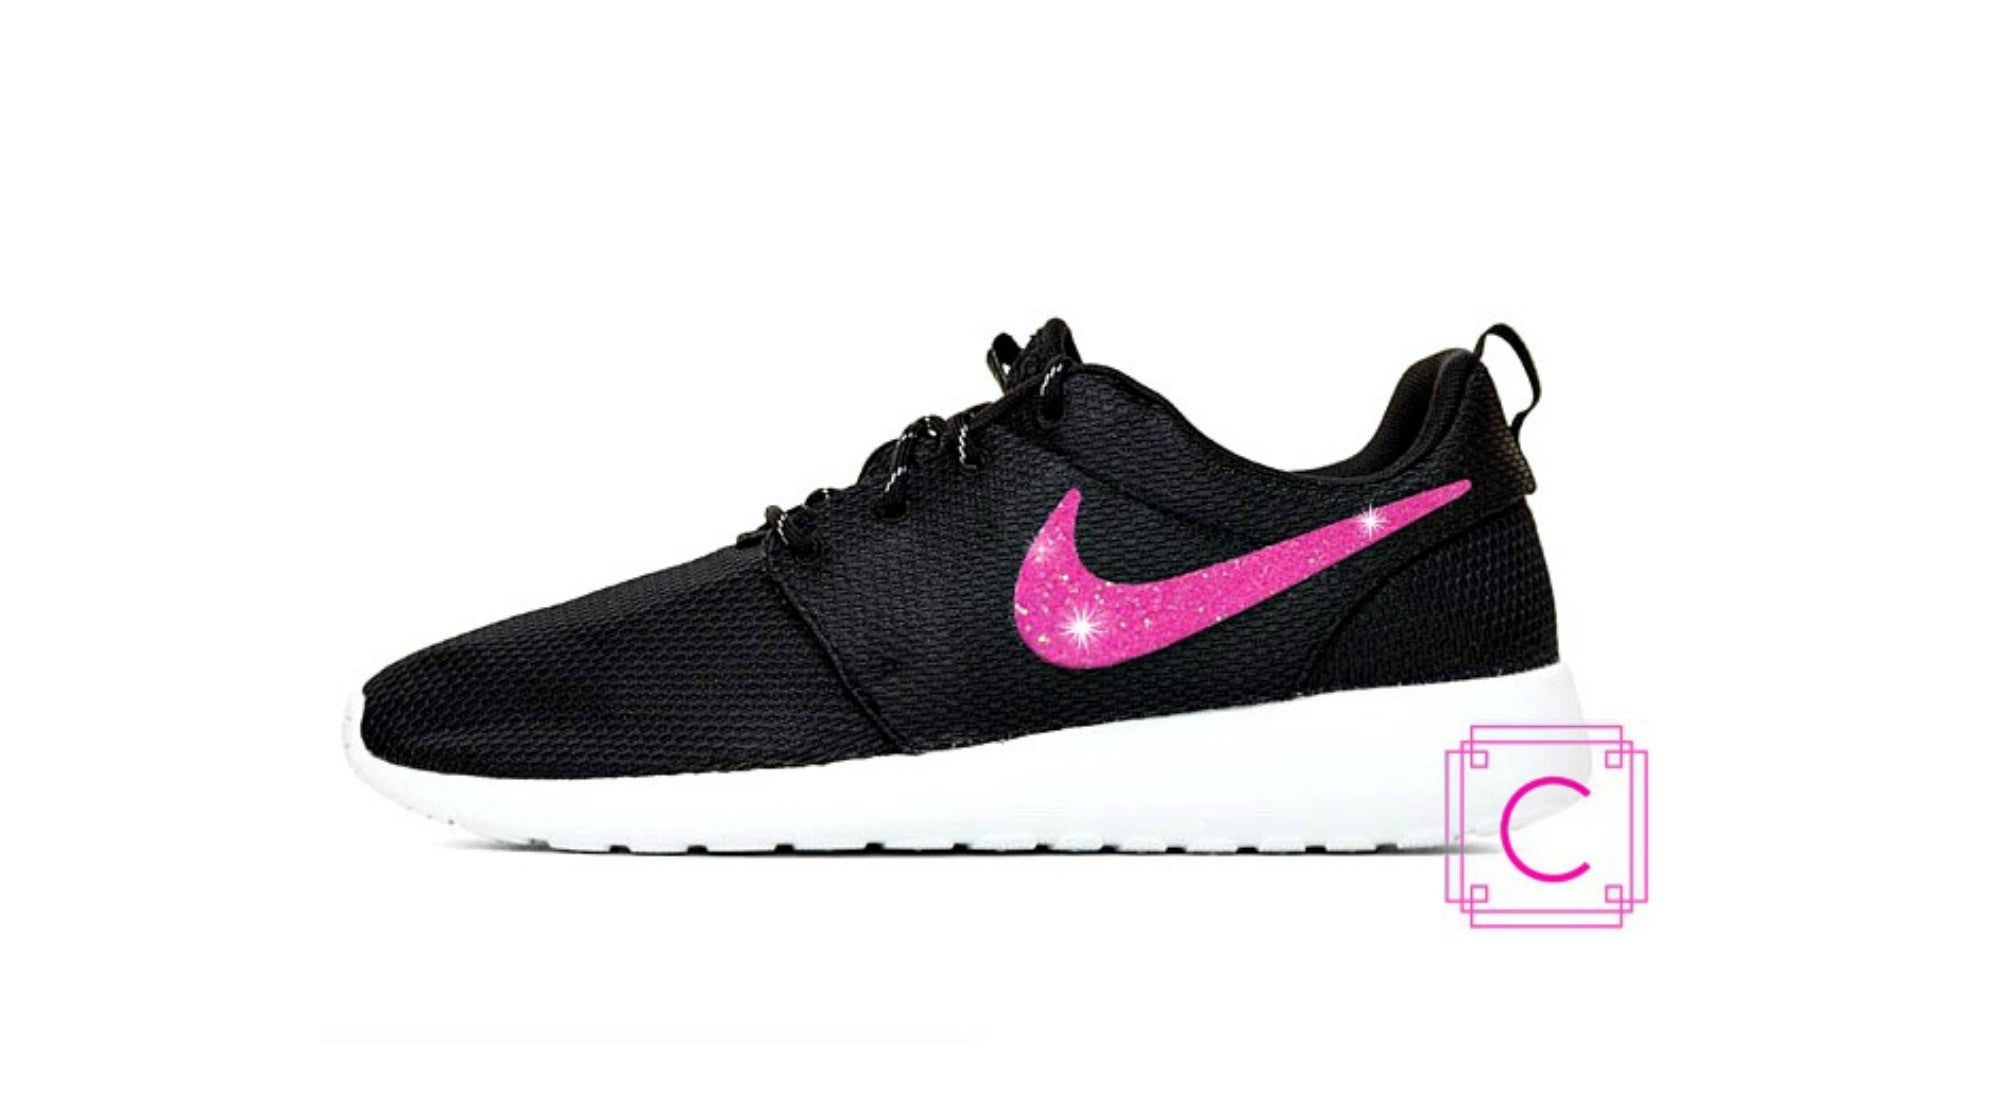 Women's Nike Roshe Two in Black and White with Pink Glitter Swoosh detail - CRYSTAHHLED